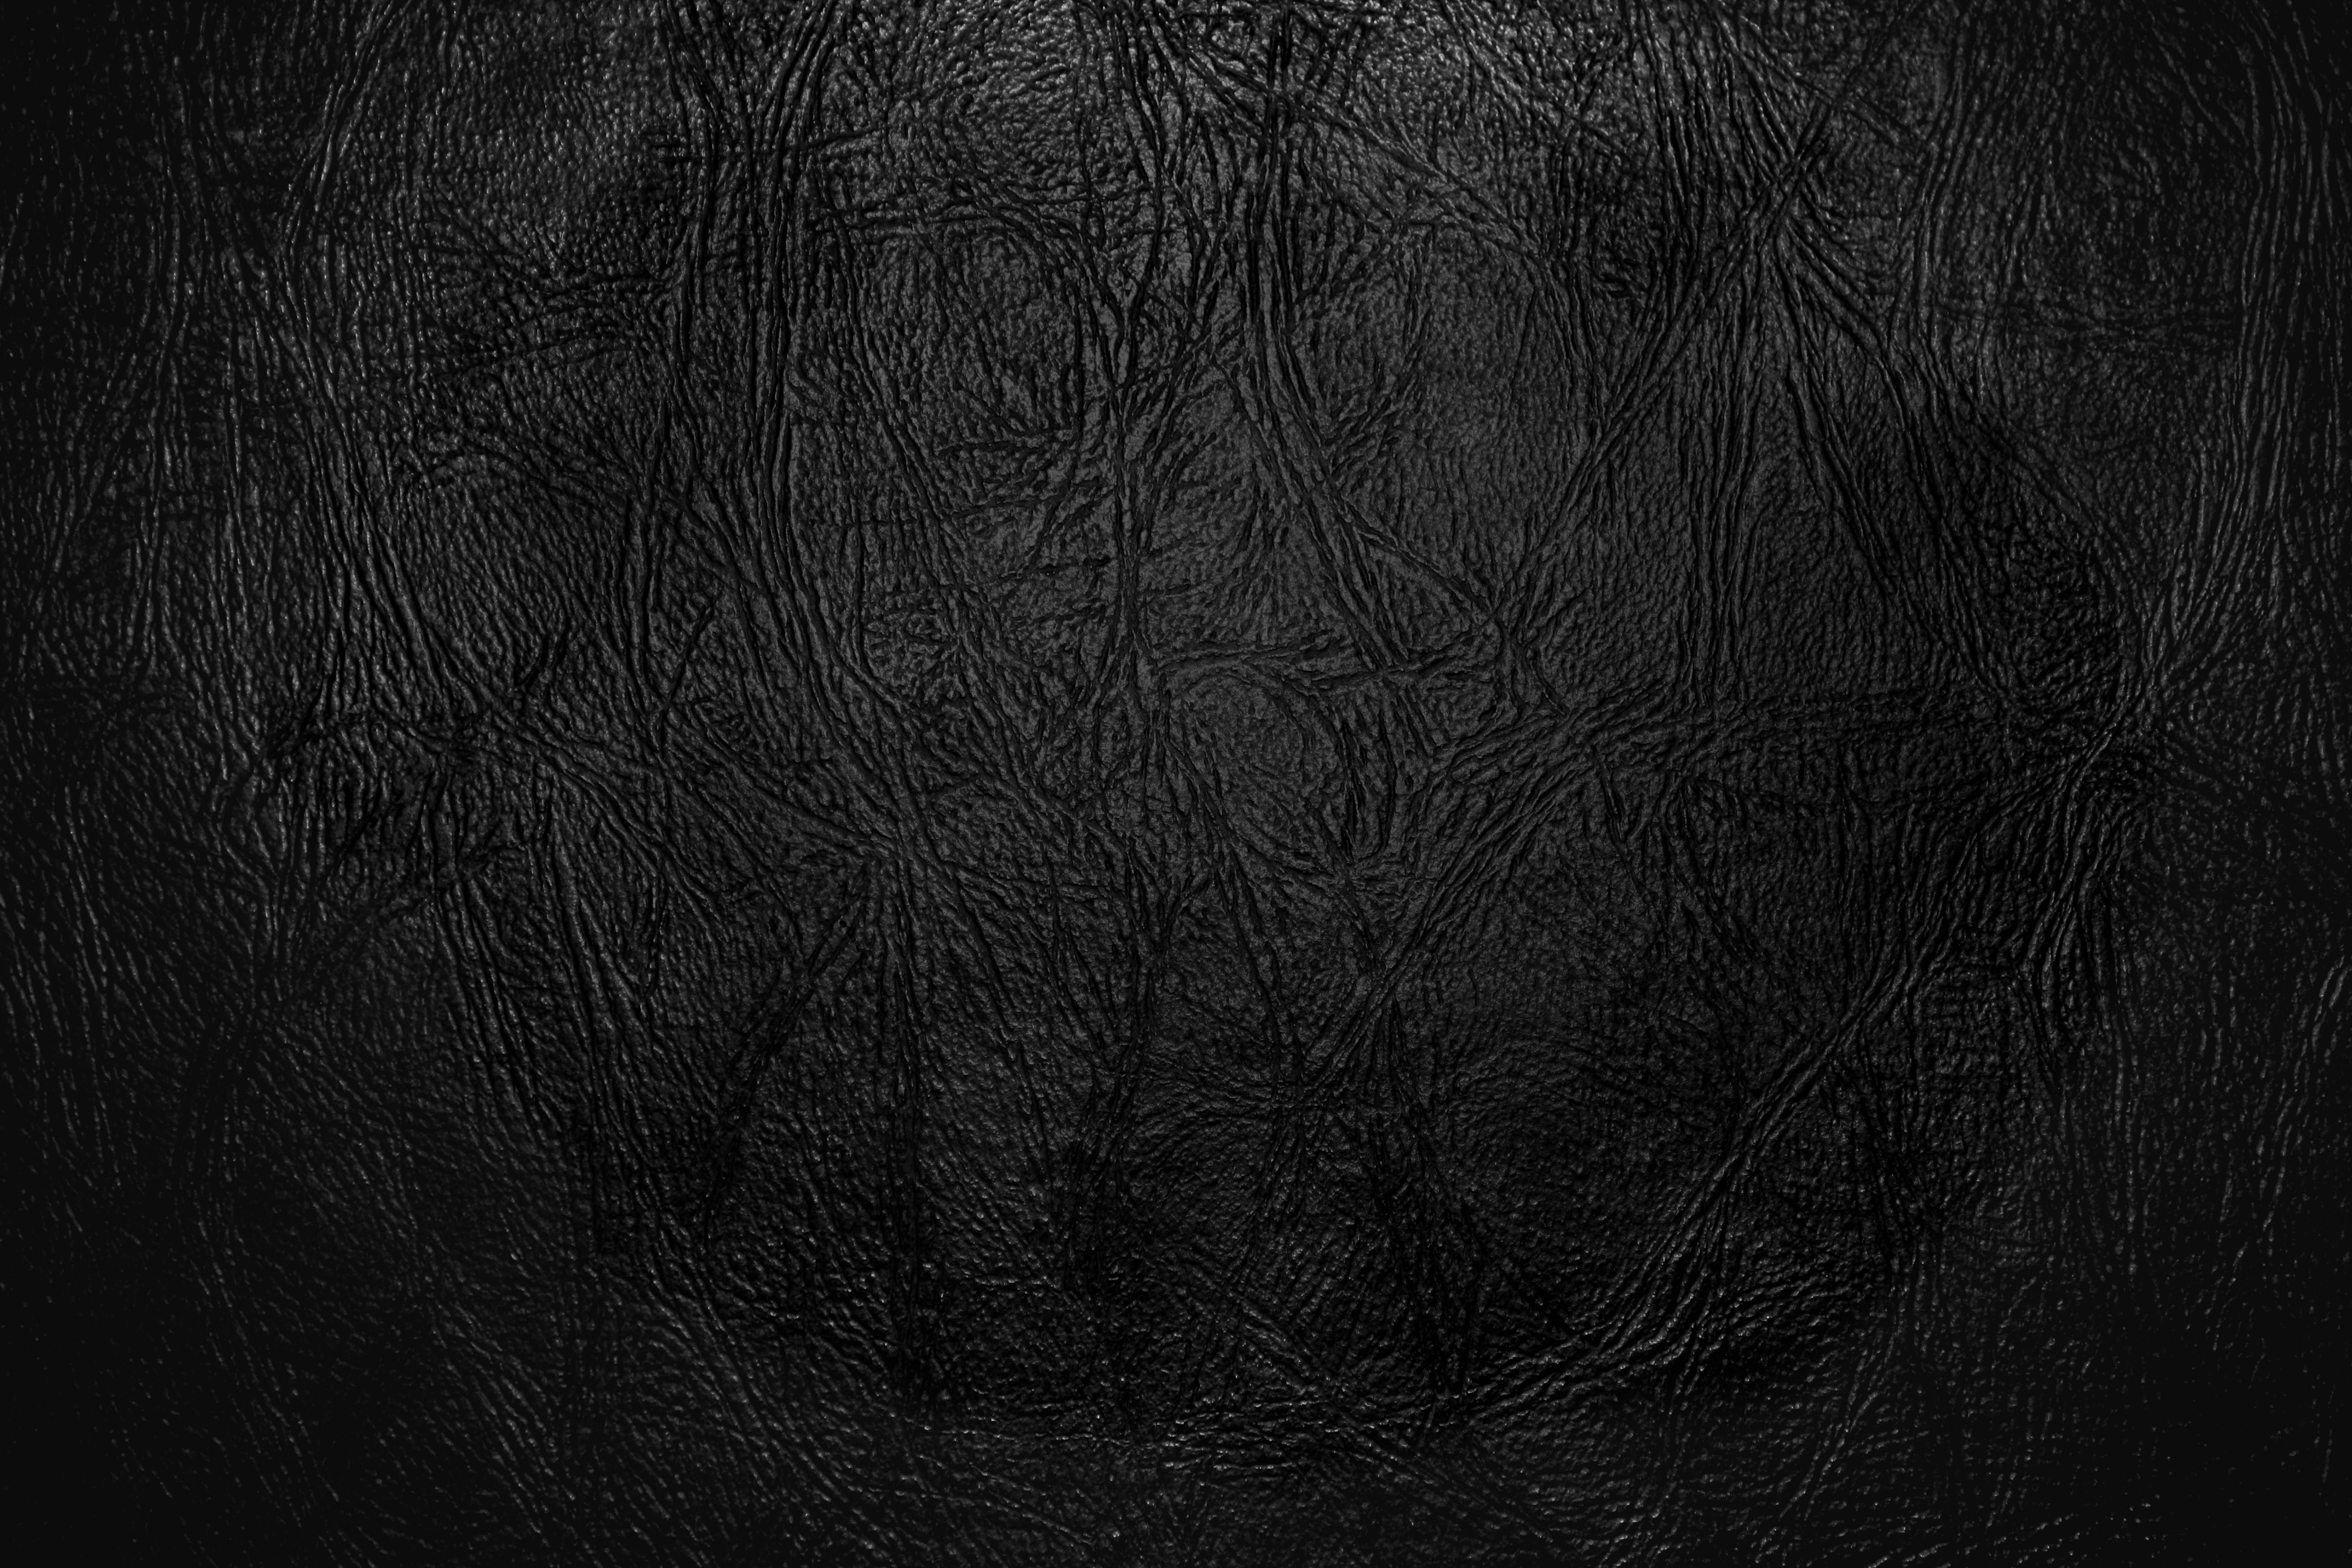 black leather close up texture picture free photograph